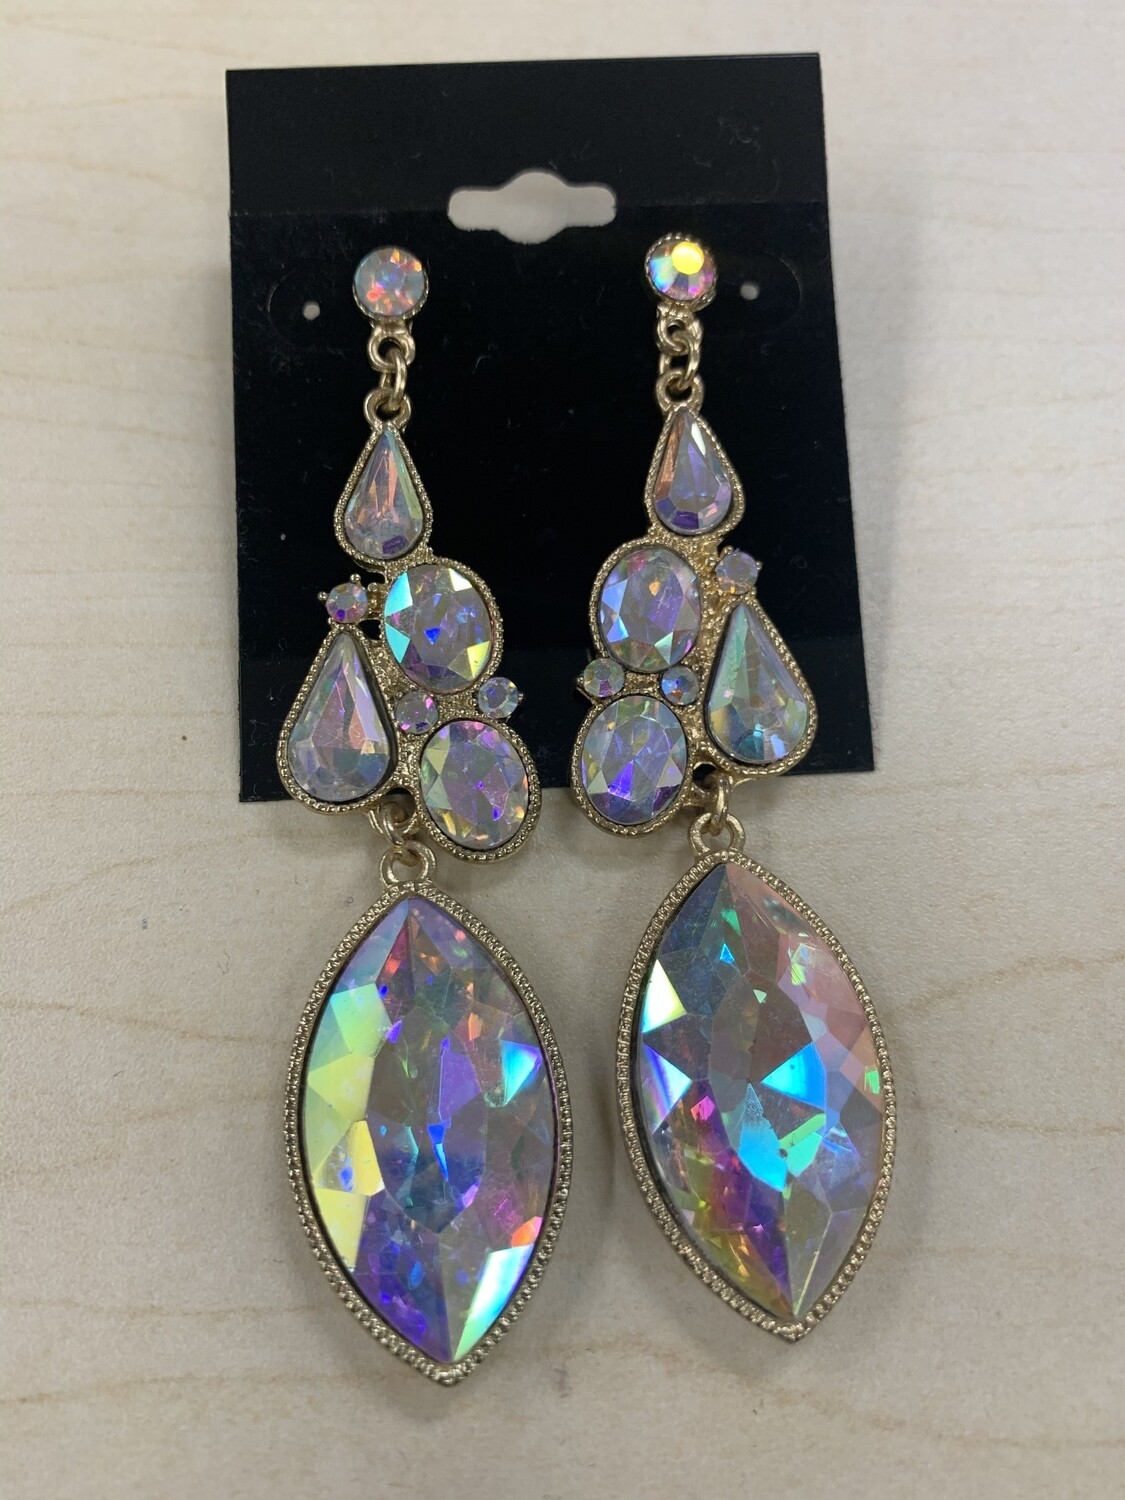 Formal Earrings Gold AB Shaped Stones